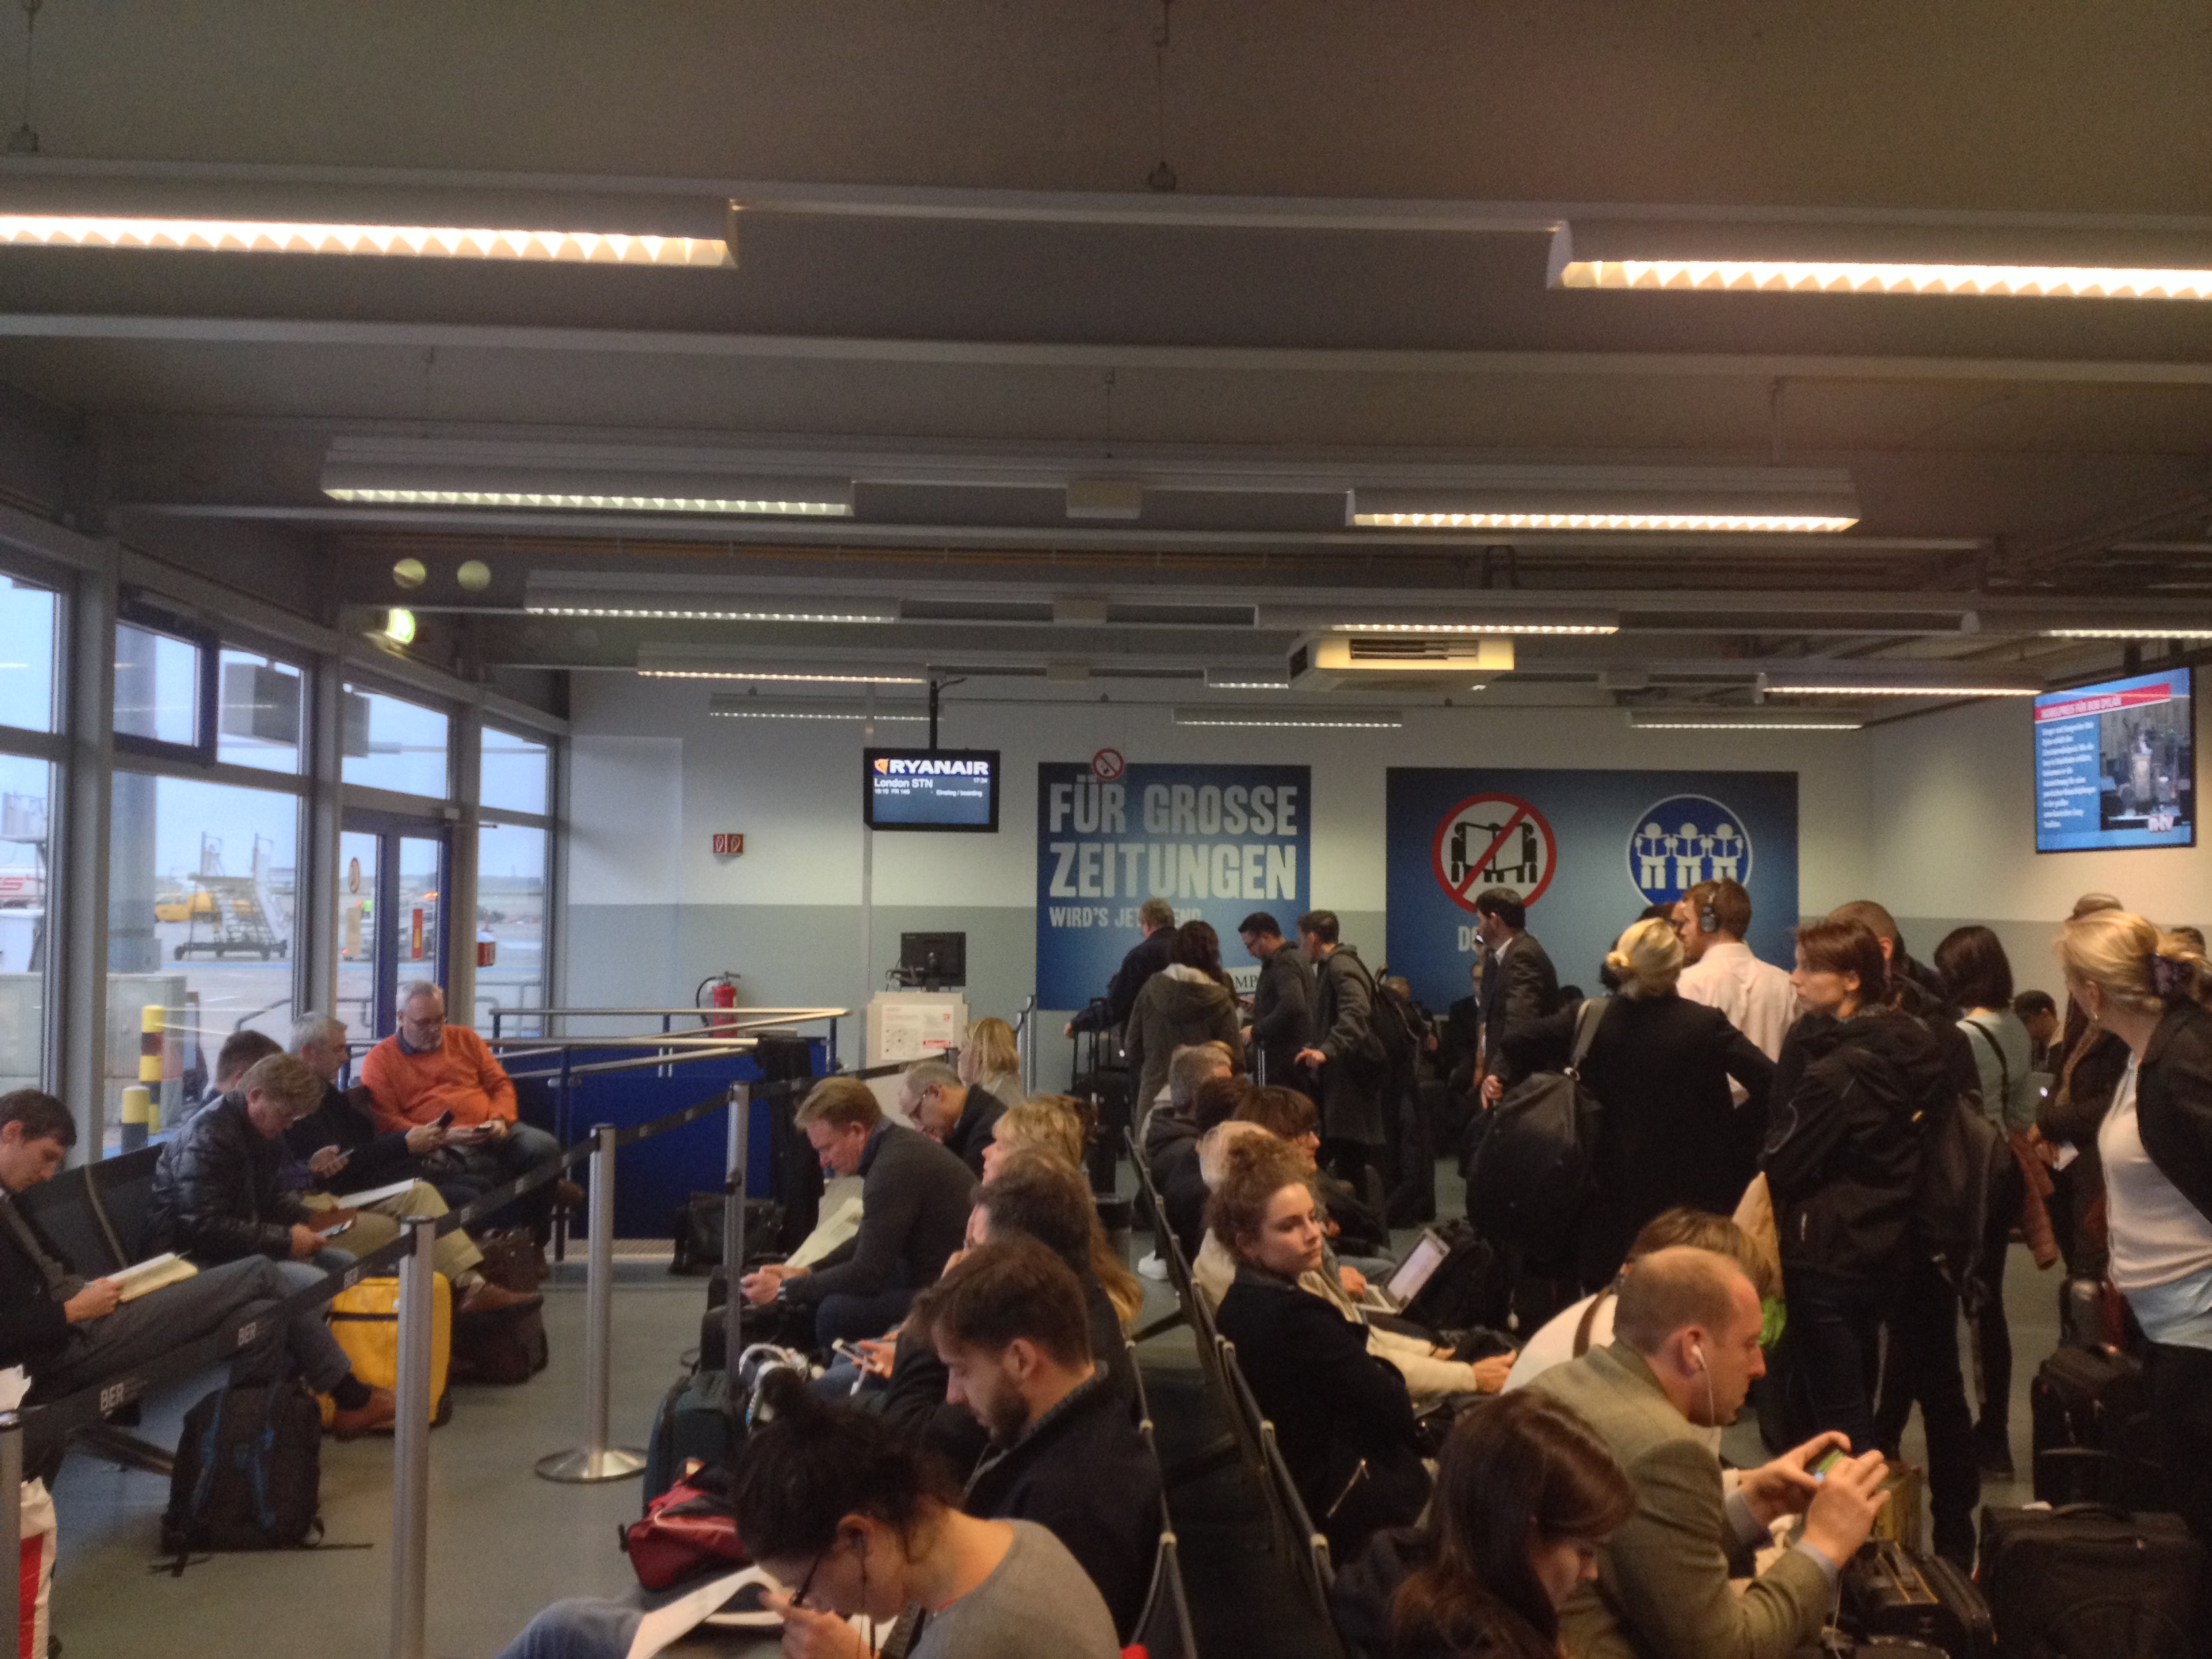 Crowded House In The Non Schengen Boarding Areas